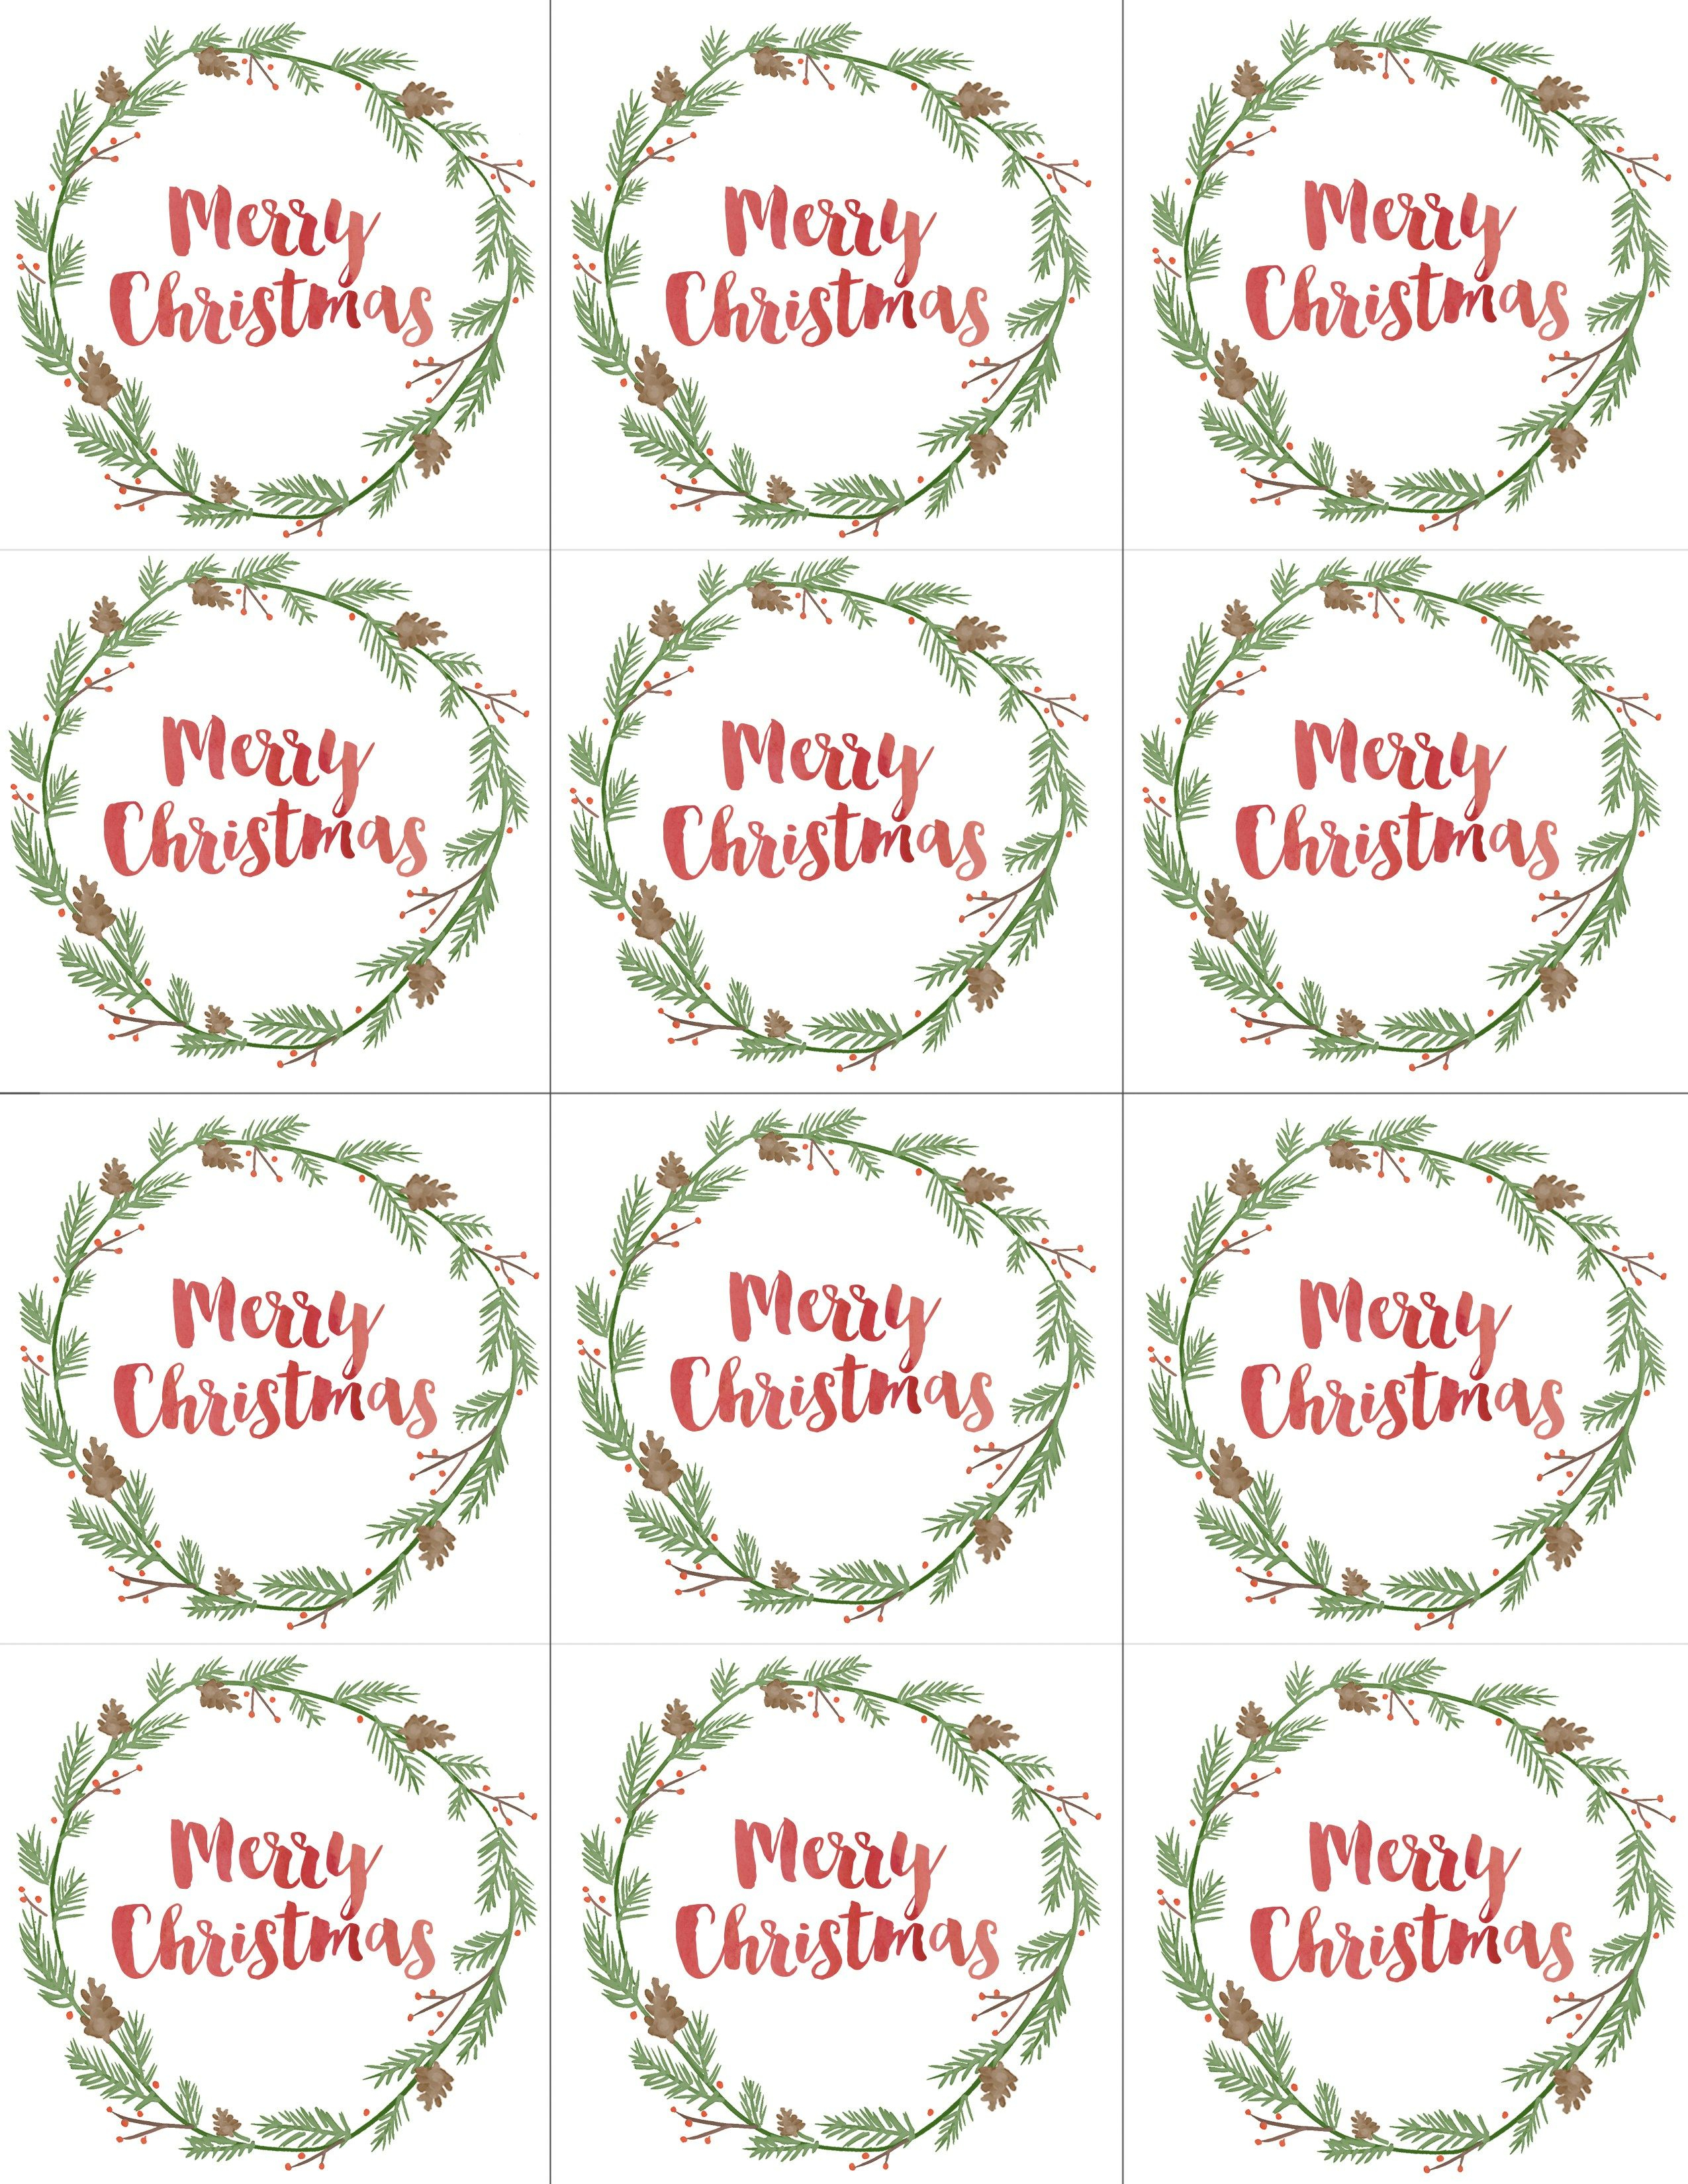 Hand Painted Gift Tags Free Printable | Christmas | Christmas Gift - Diy Gift Tags Free Printable